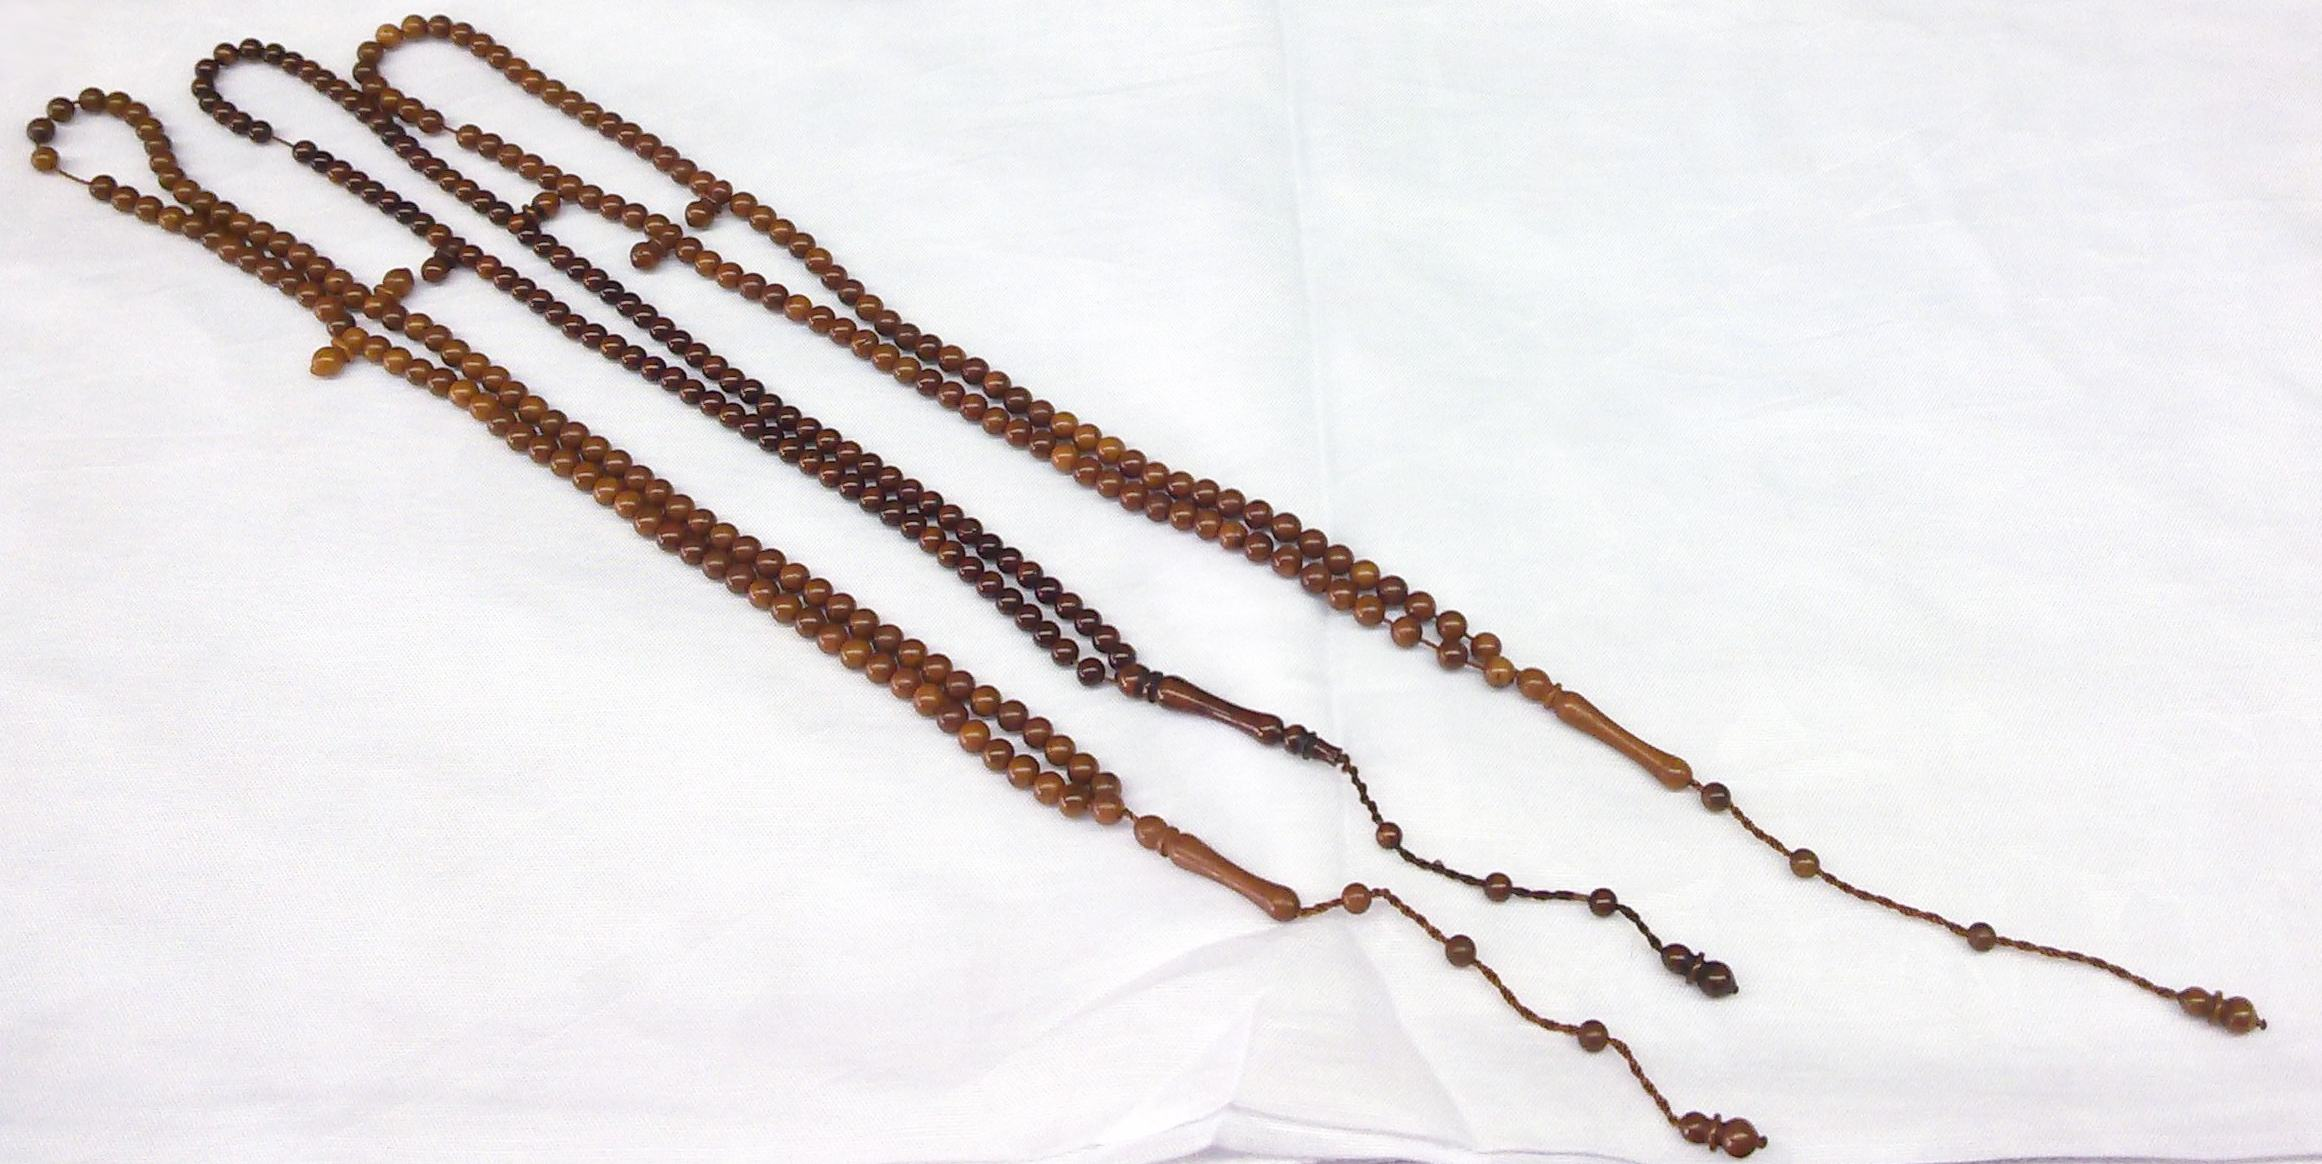 Reverberations Muslim Prayer Beads